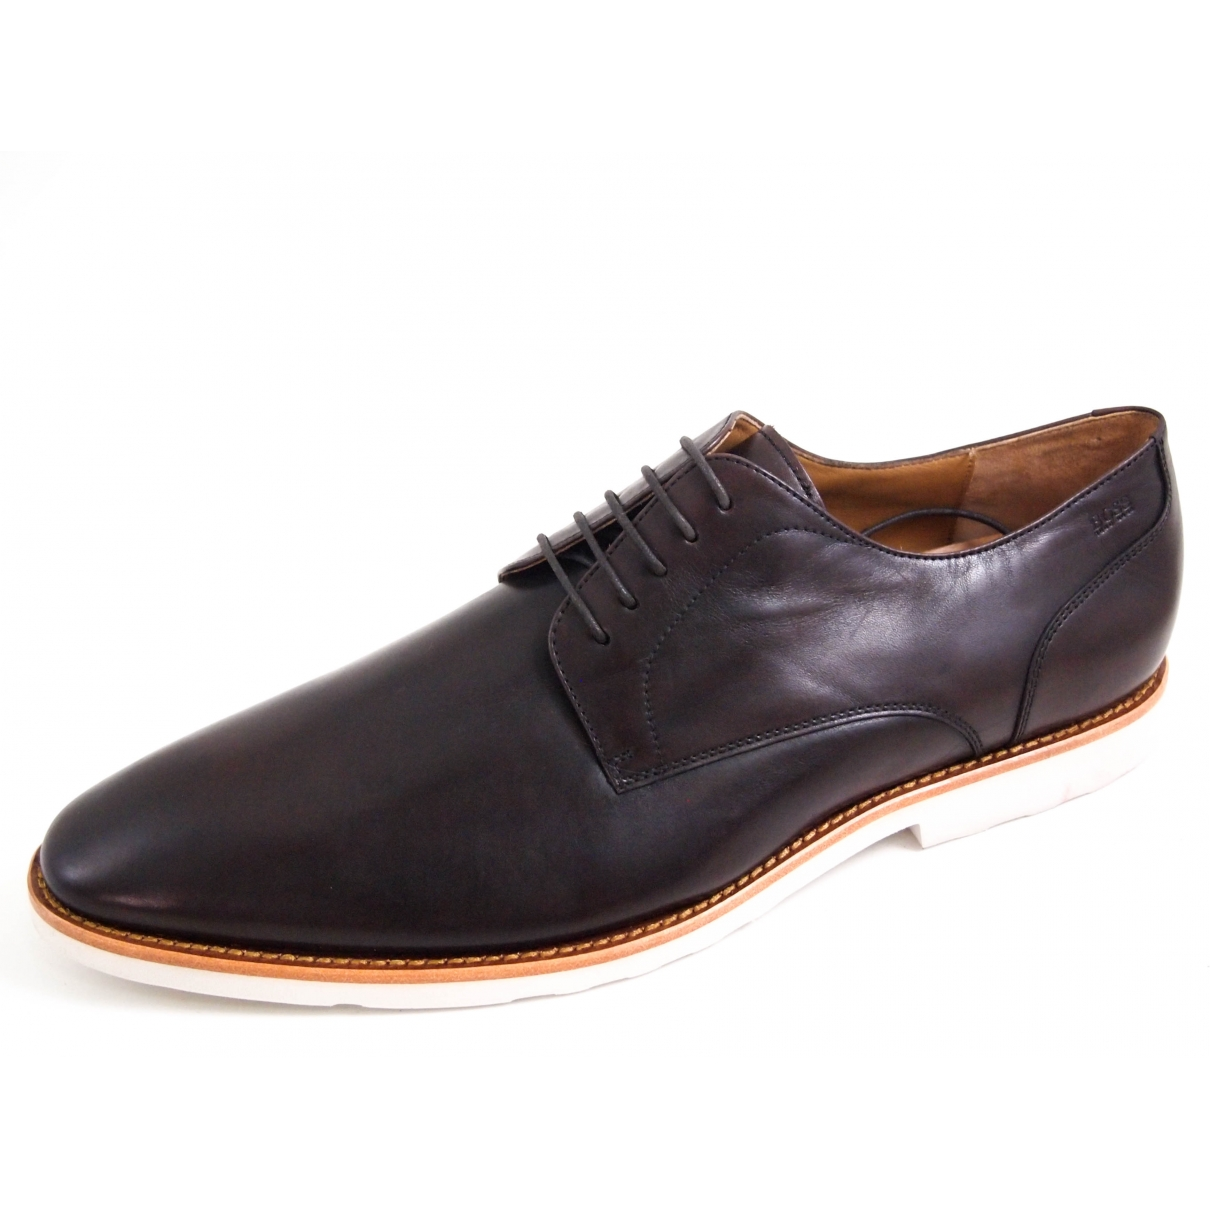 Hugo Boss - Derbies   pour homme en cuir - marron